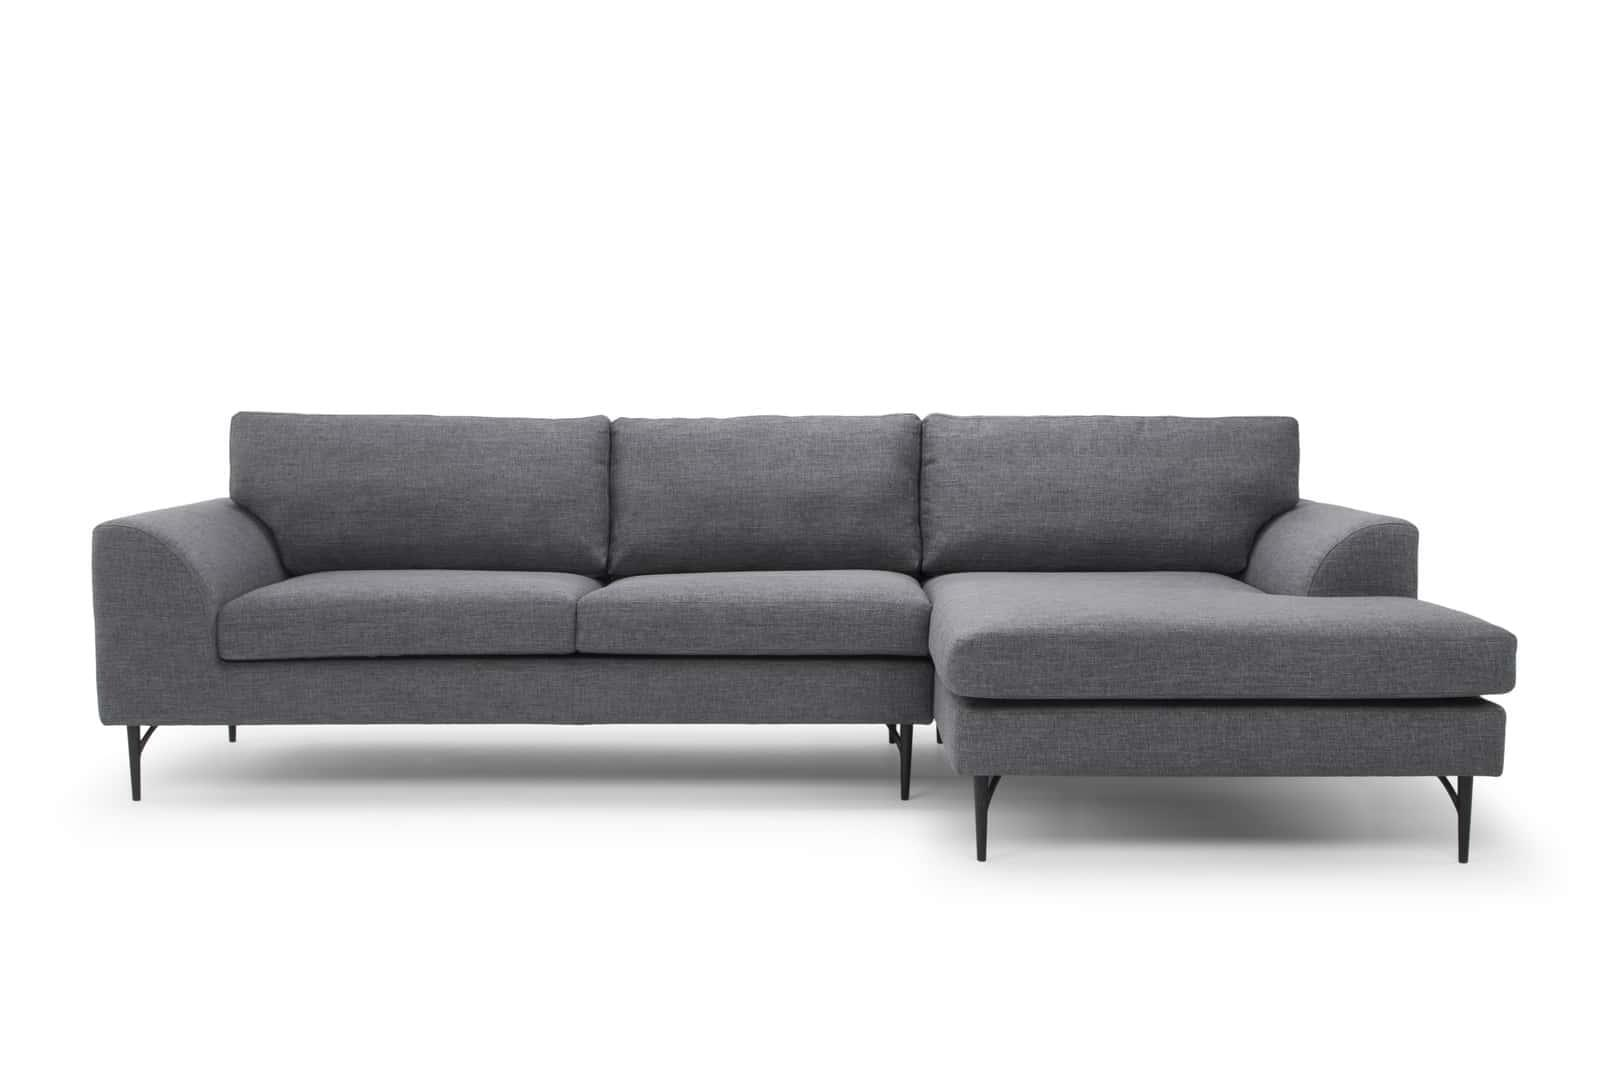 Sienna Modern Designer 3 Seater Sofa with Chaise - Steel - Right Hand Facing